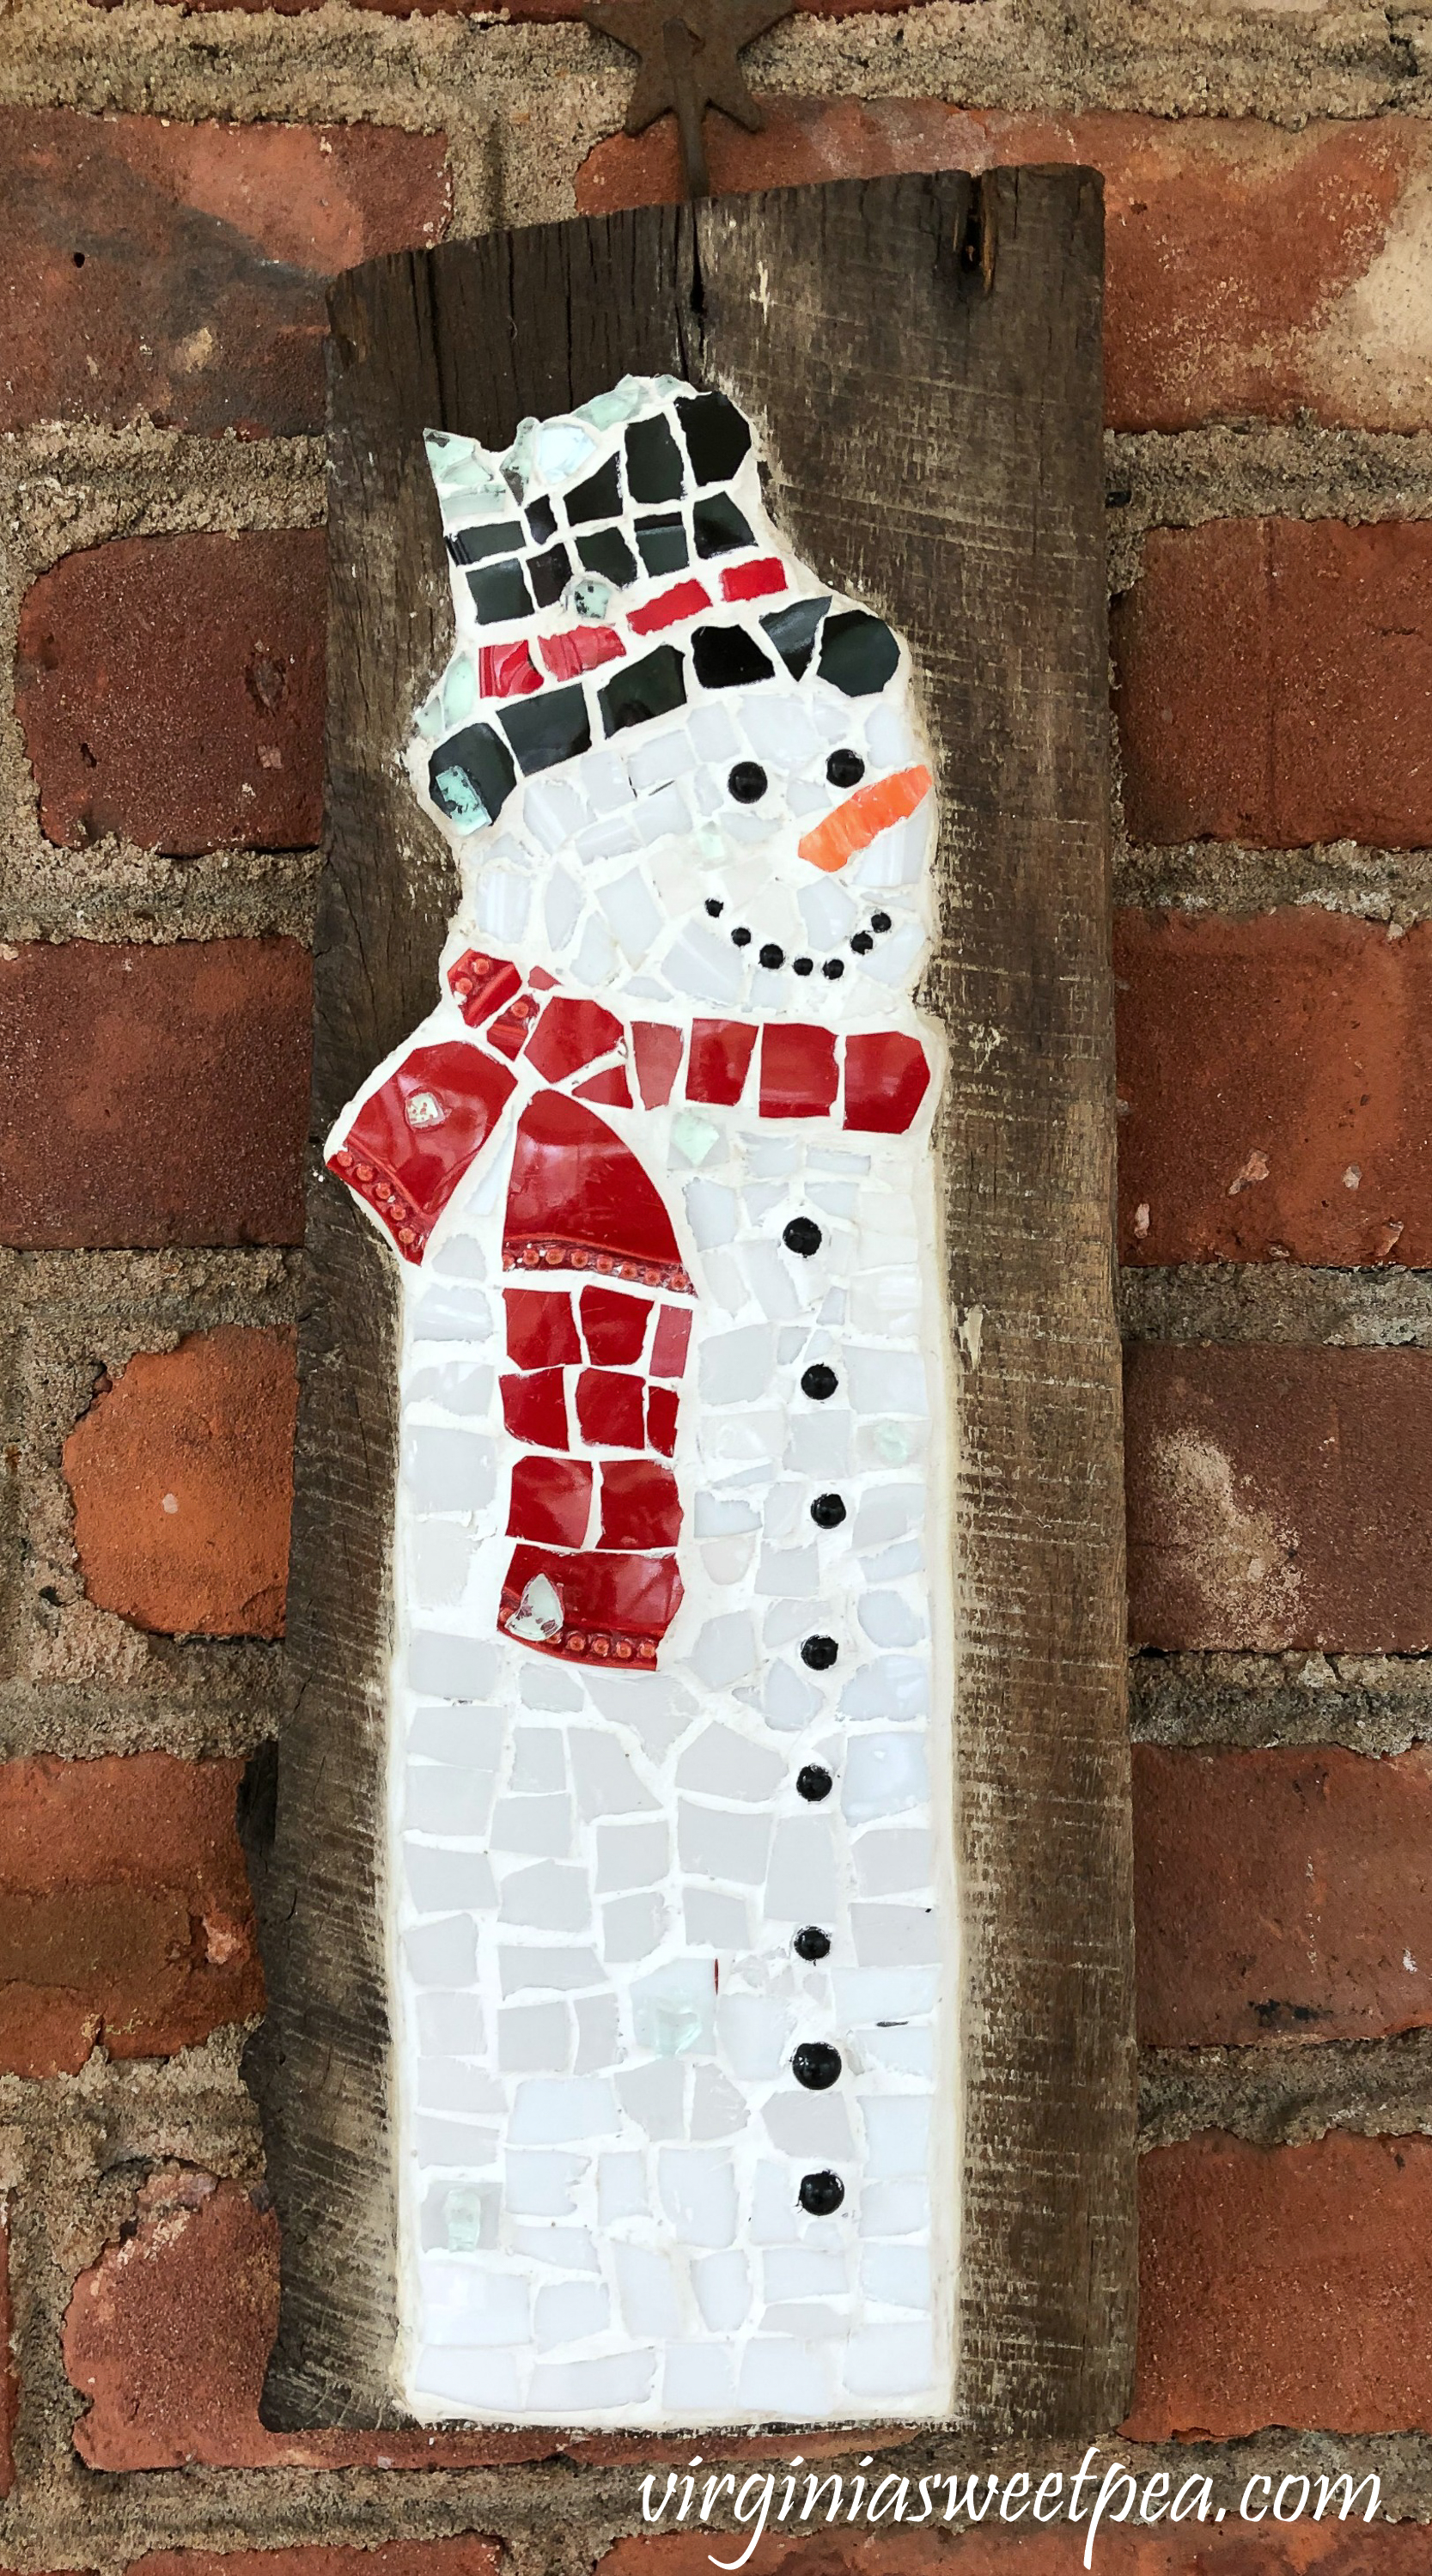 Snowman made with dish pieces on a piece of barnwood.